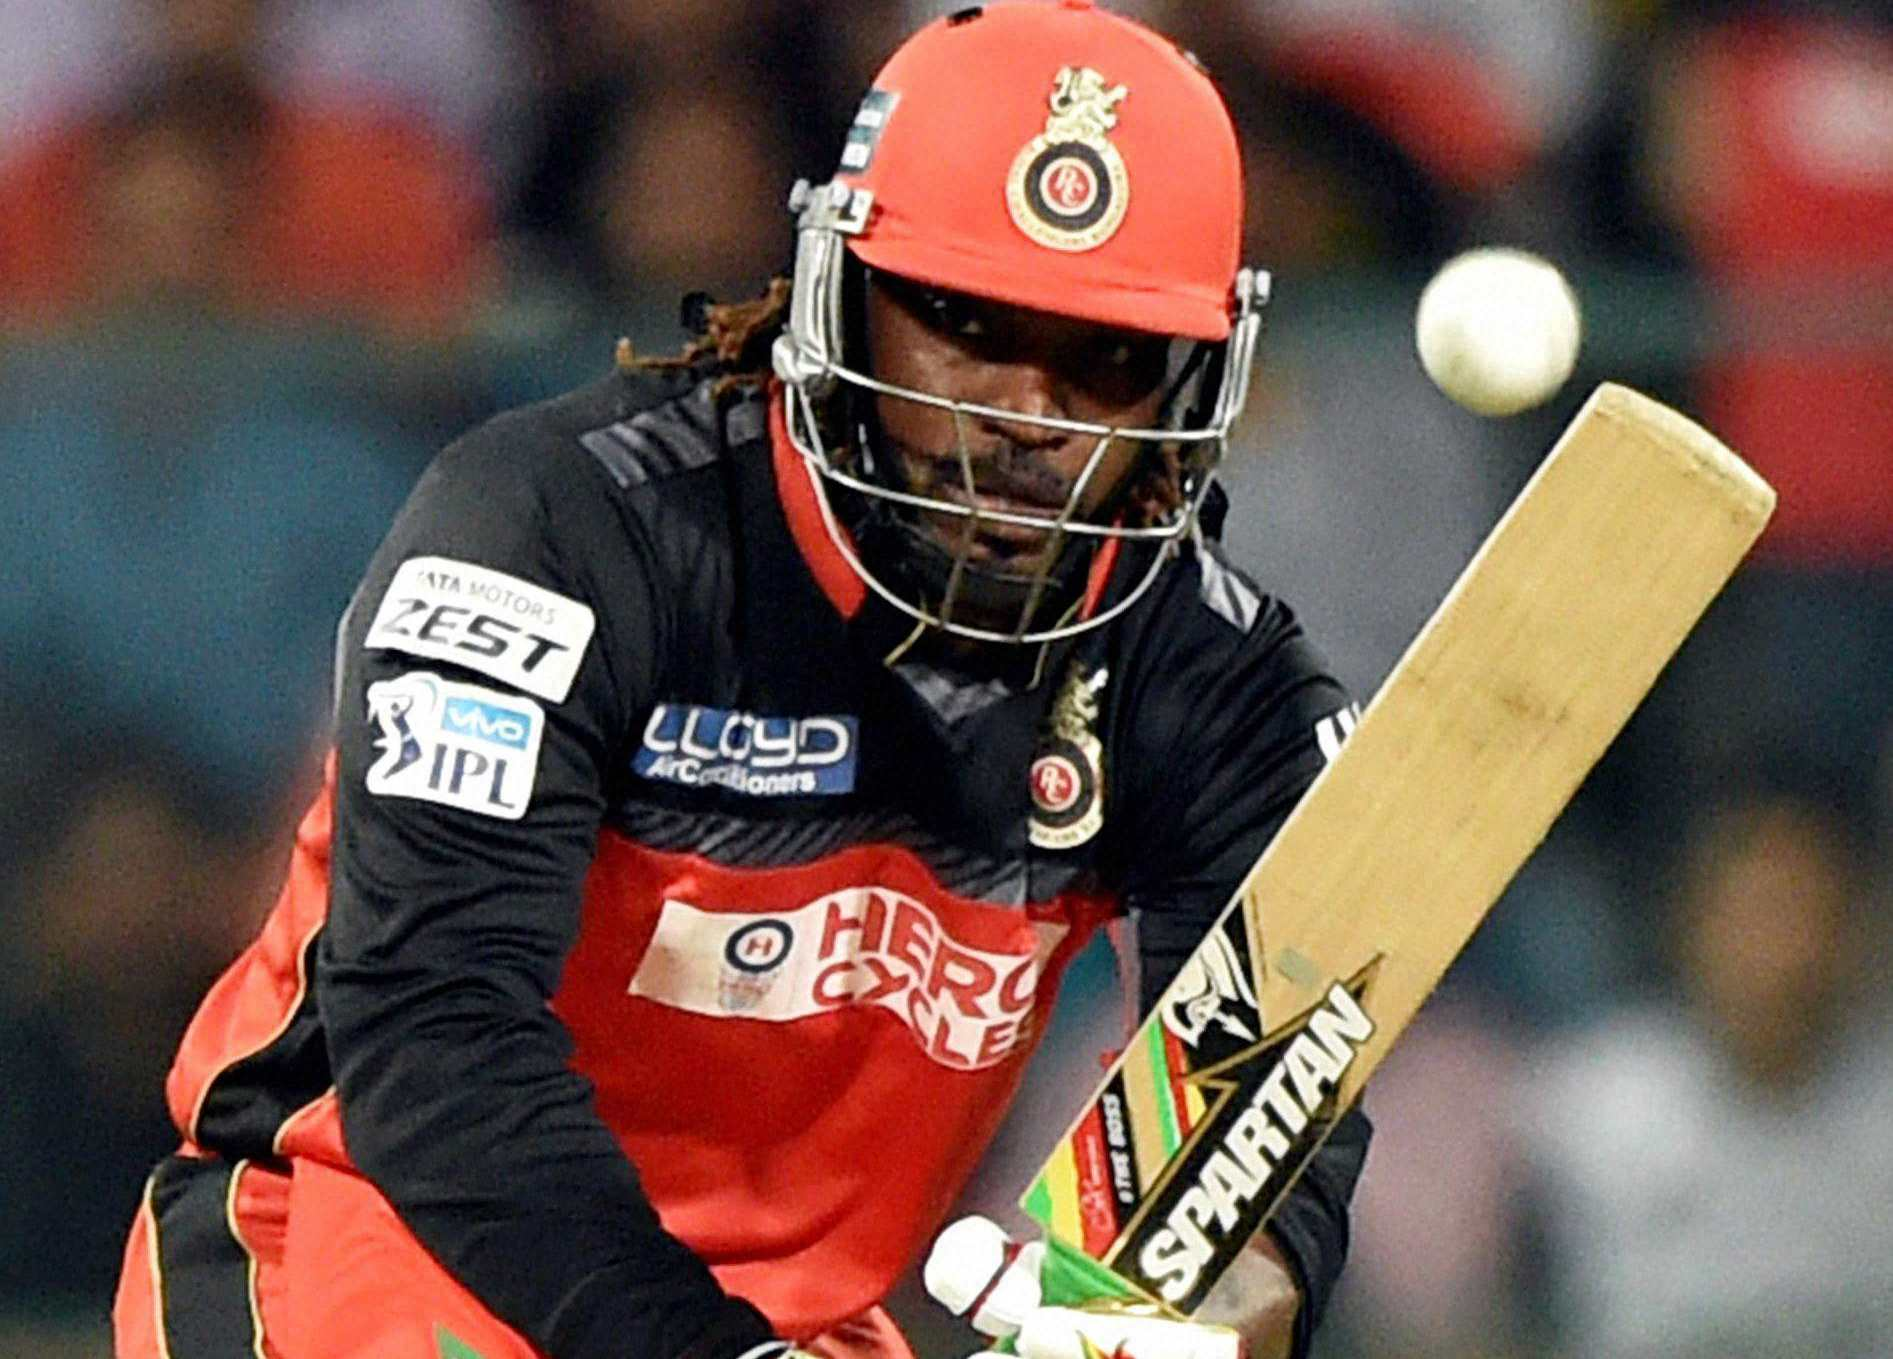 chris gayle became first cricketer to score 10000 runs in t20 cricket